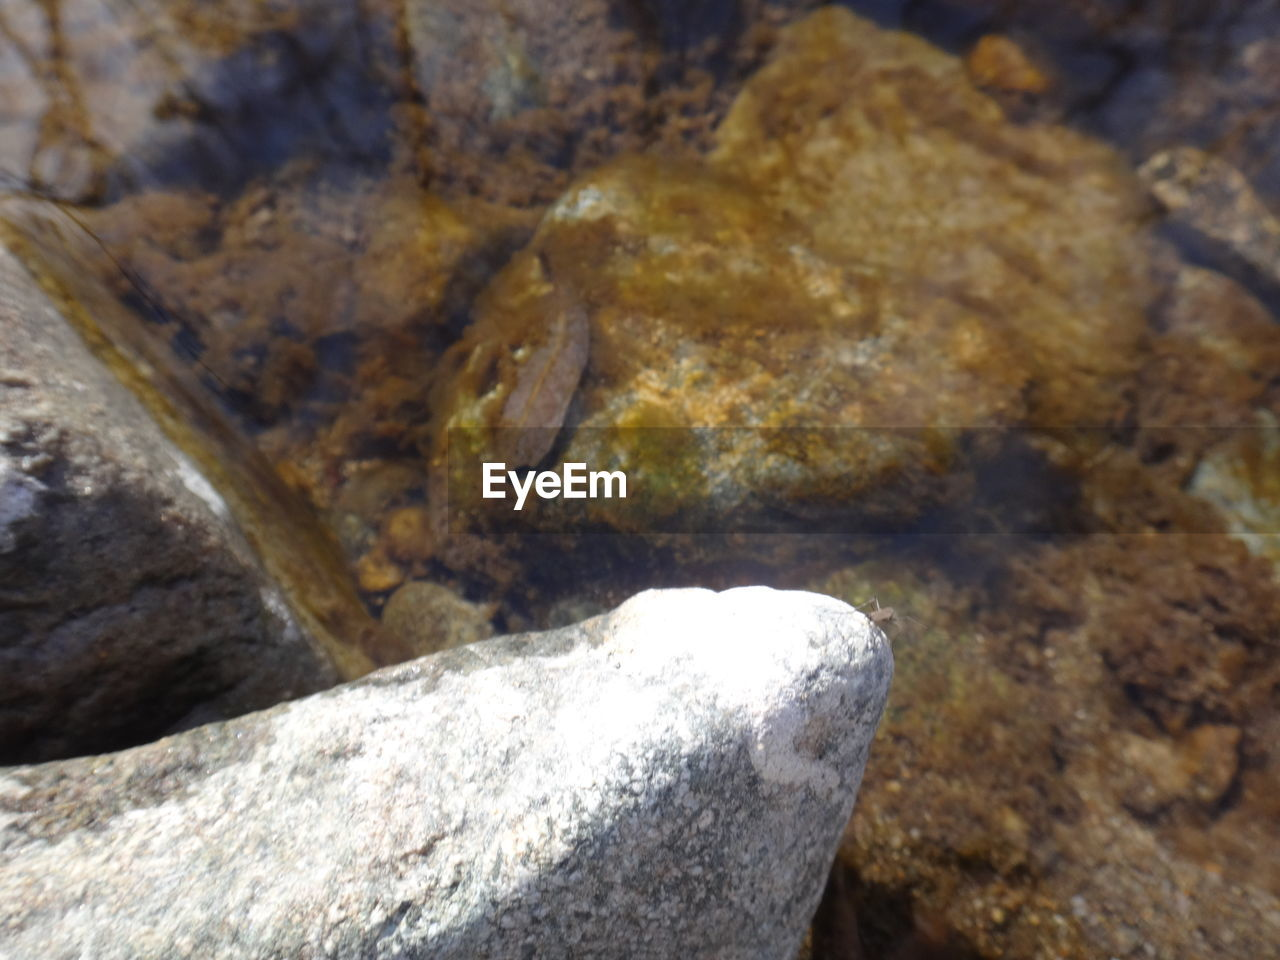 rock - object, nature, water, no people, day, textured, close-up, outdoors, beauty in nature